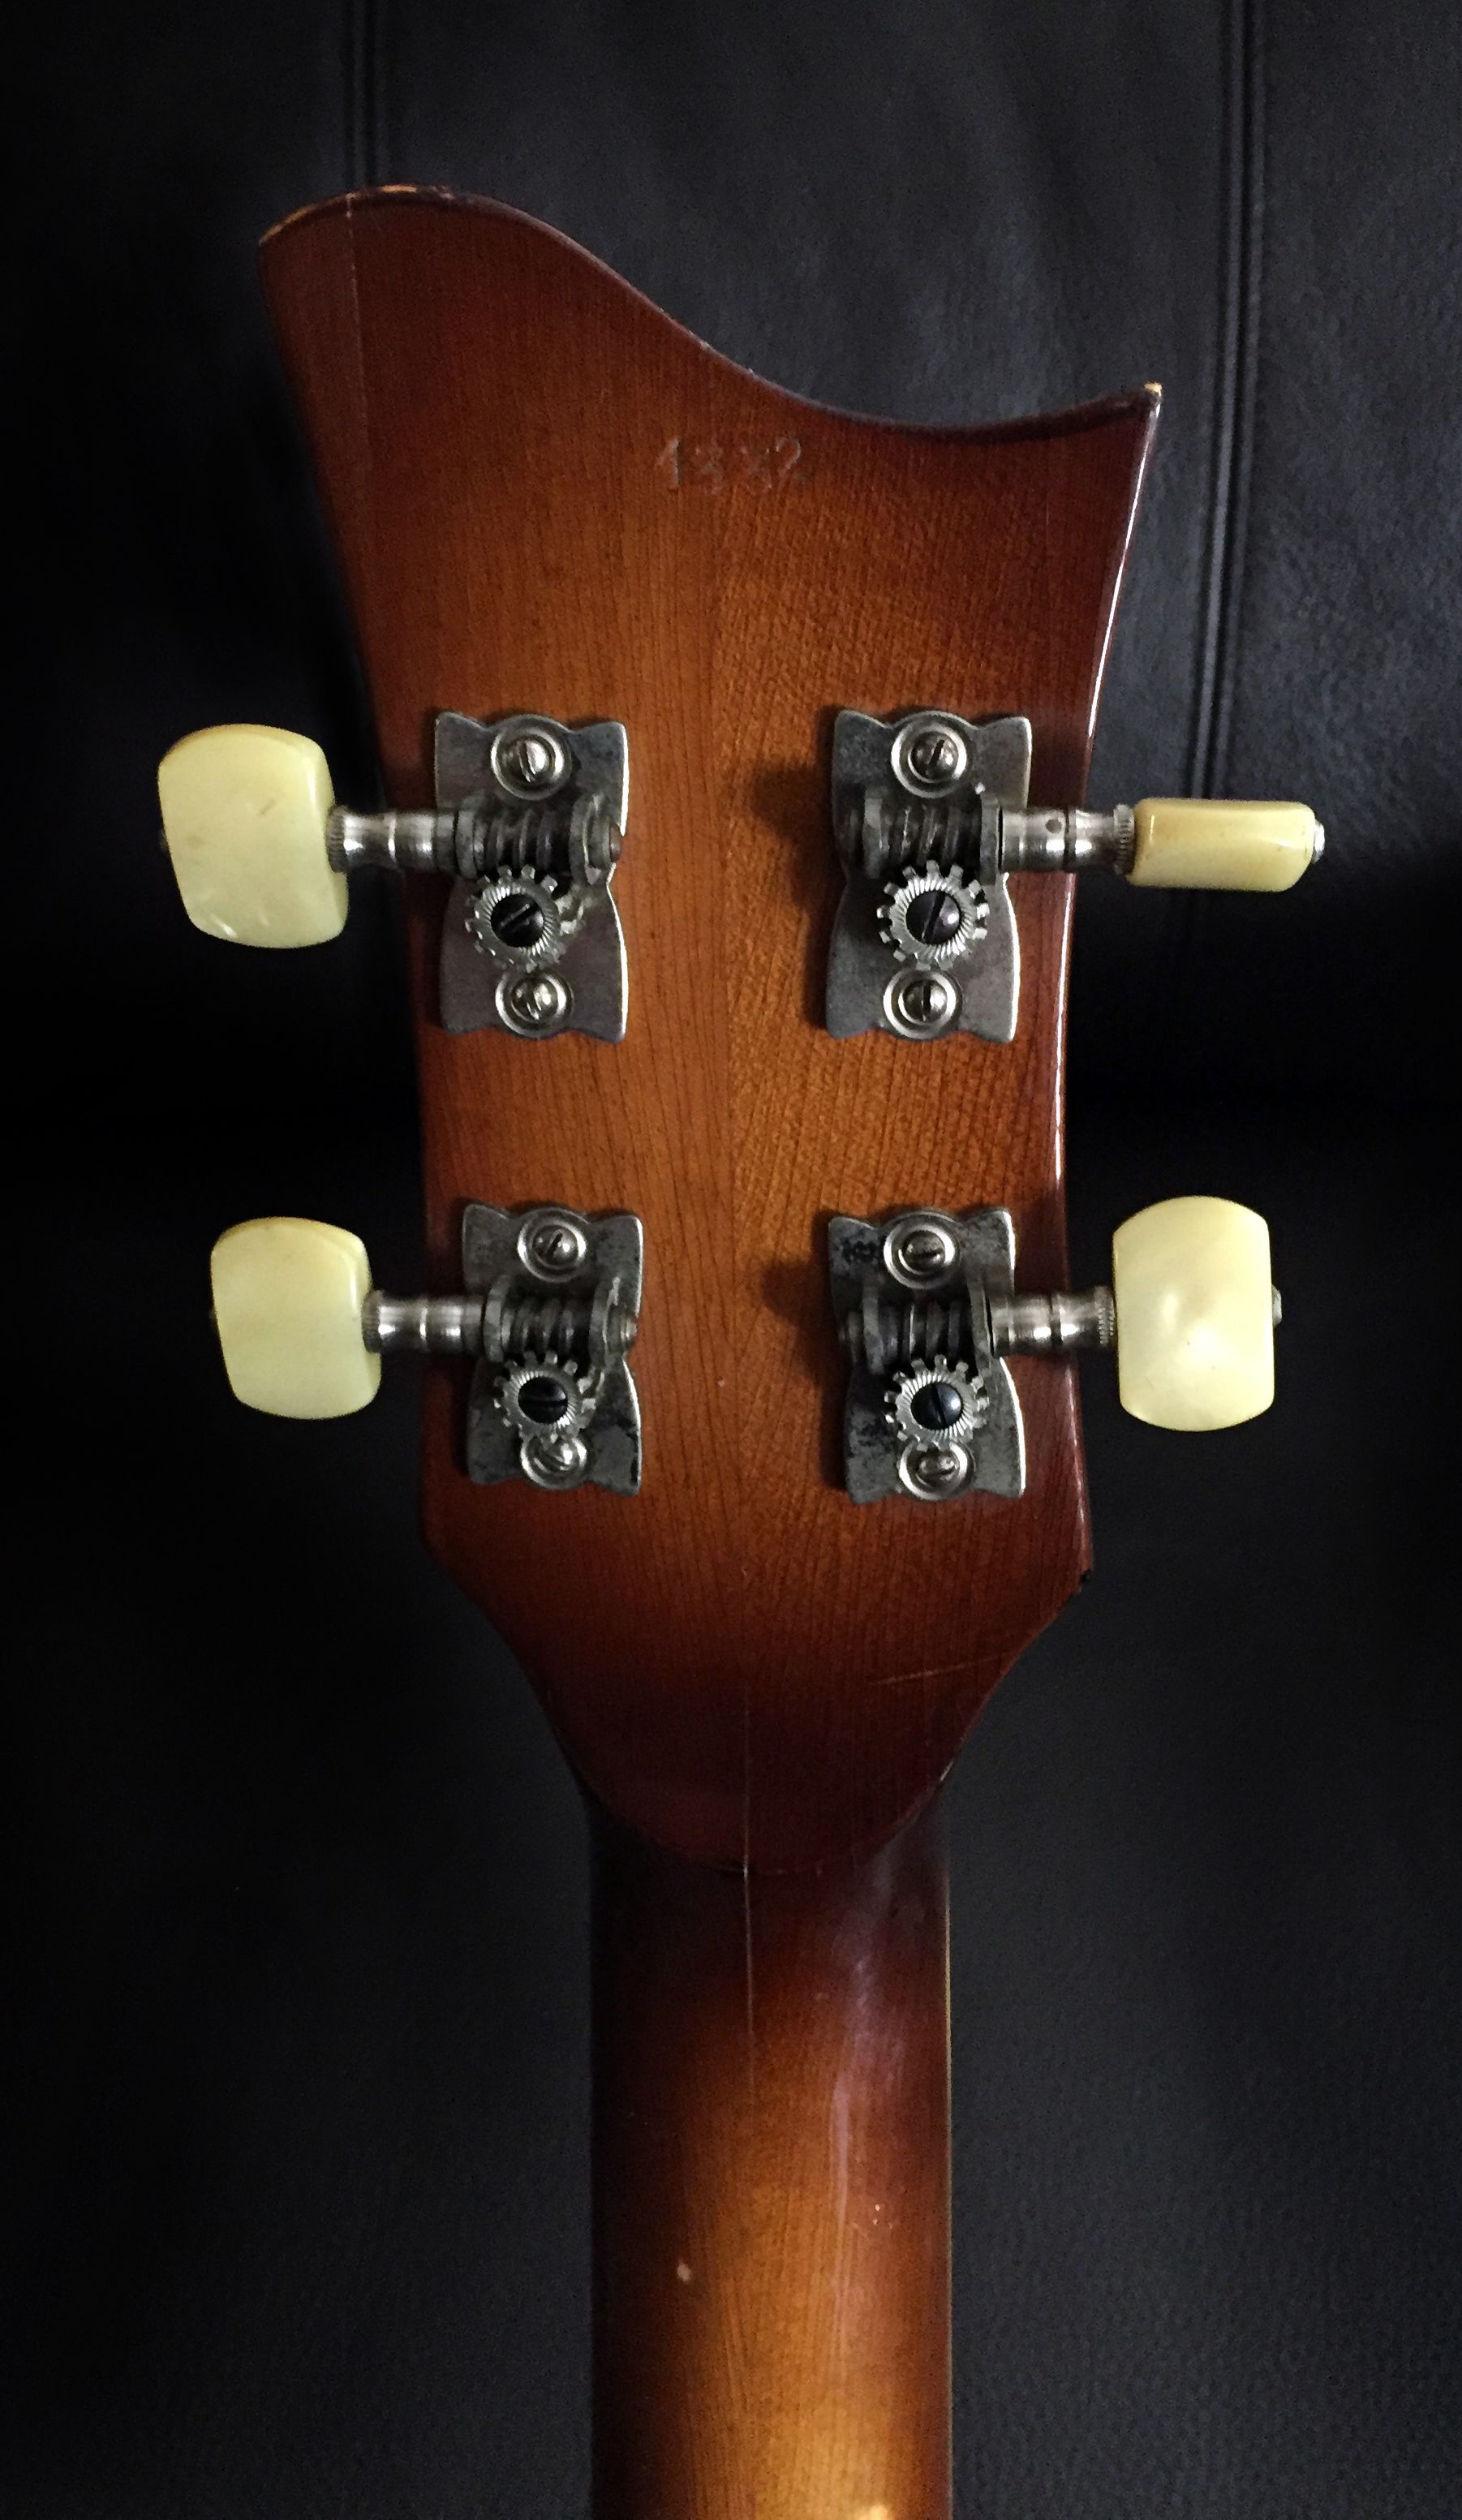 Original 1964 Hofner 500 1 Violin Beatle Bass From Selmer Uk Showing The Back Of The Headstock And Two Piece Neck Selmer The Originals Musical Instruments